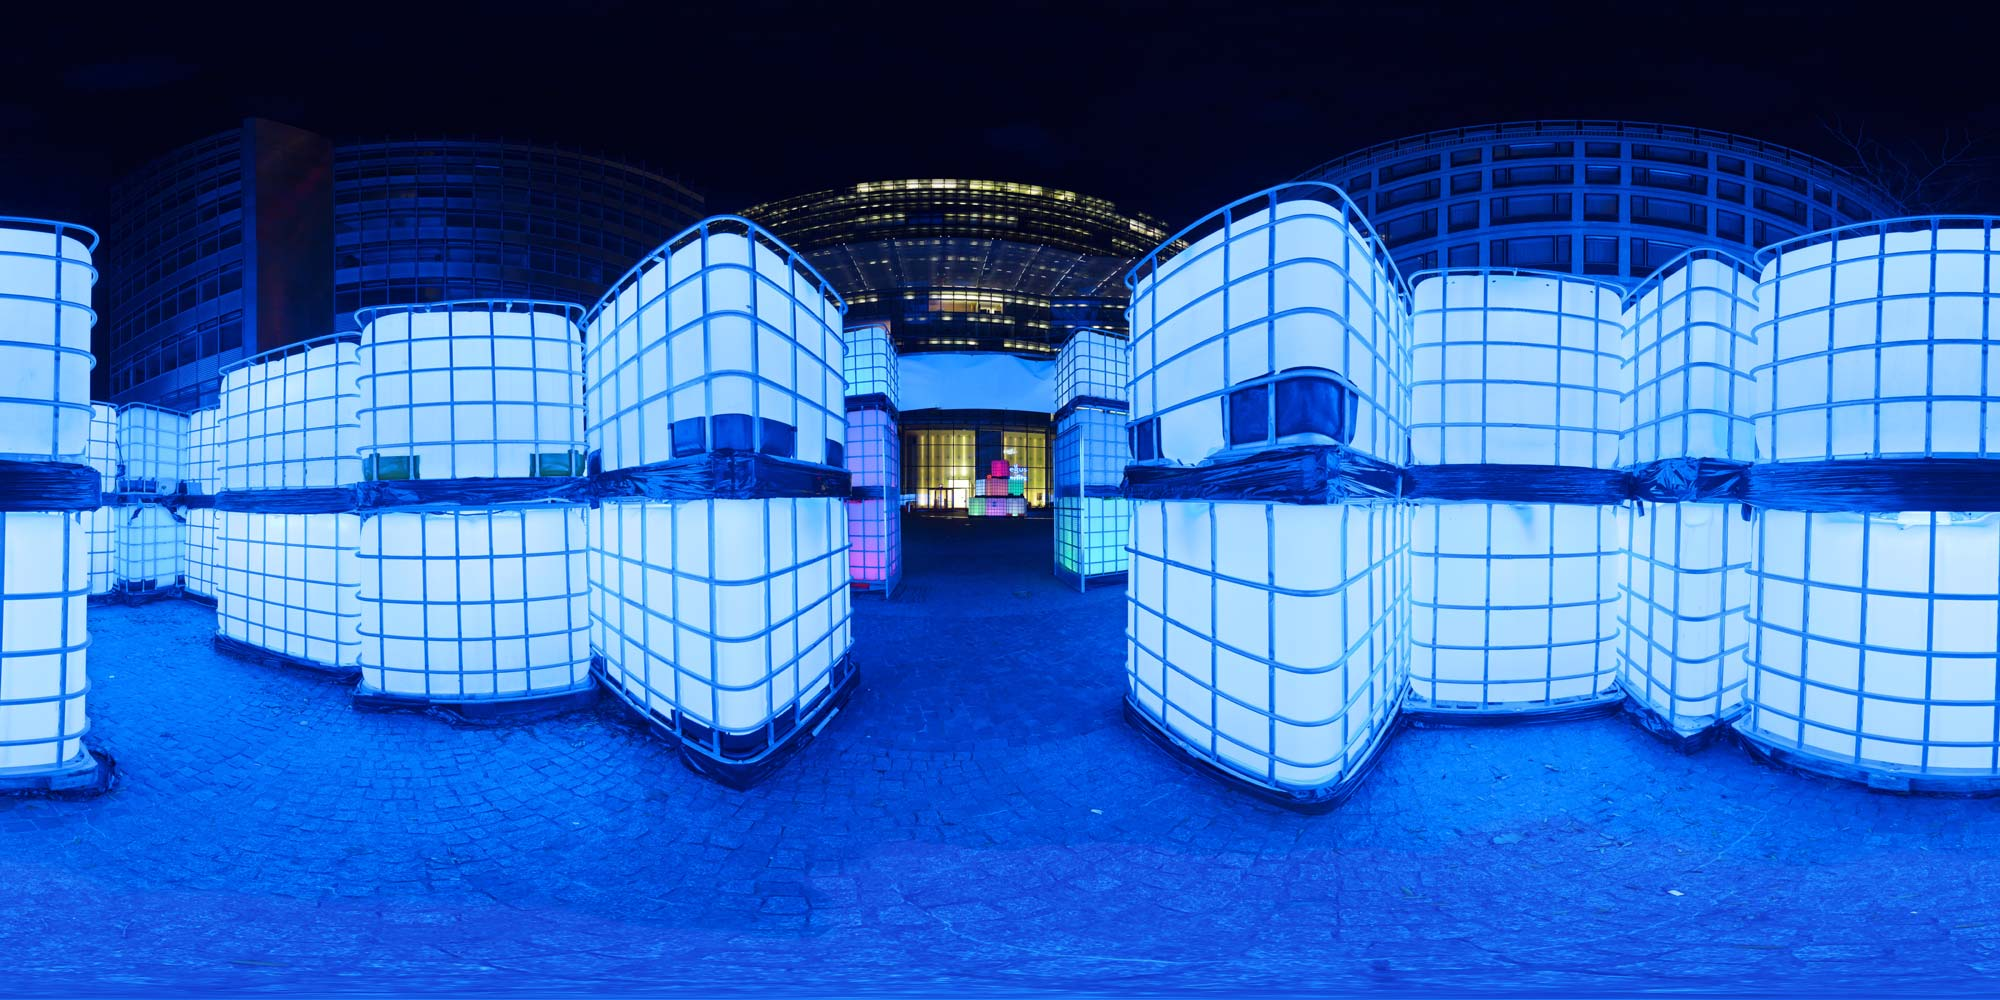 Panorama Berlin Festival of Lights - FOL 2013 Labyrinth am Kranzlereck